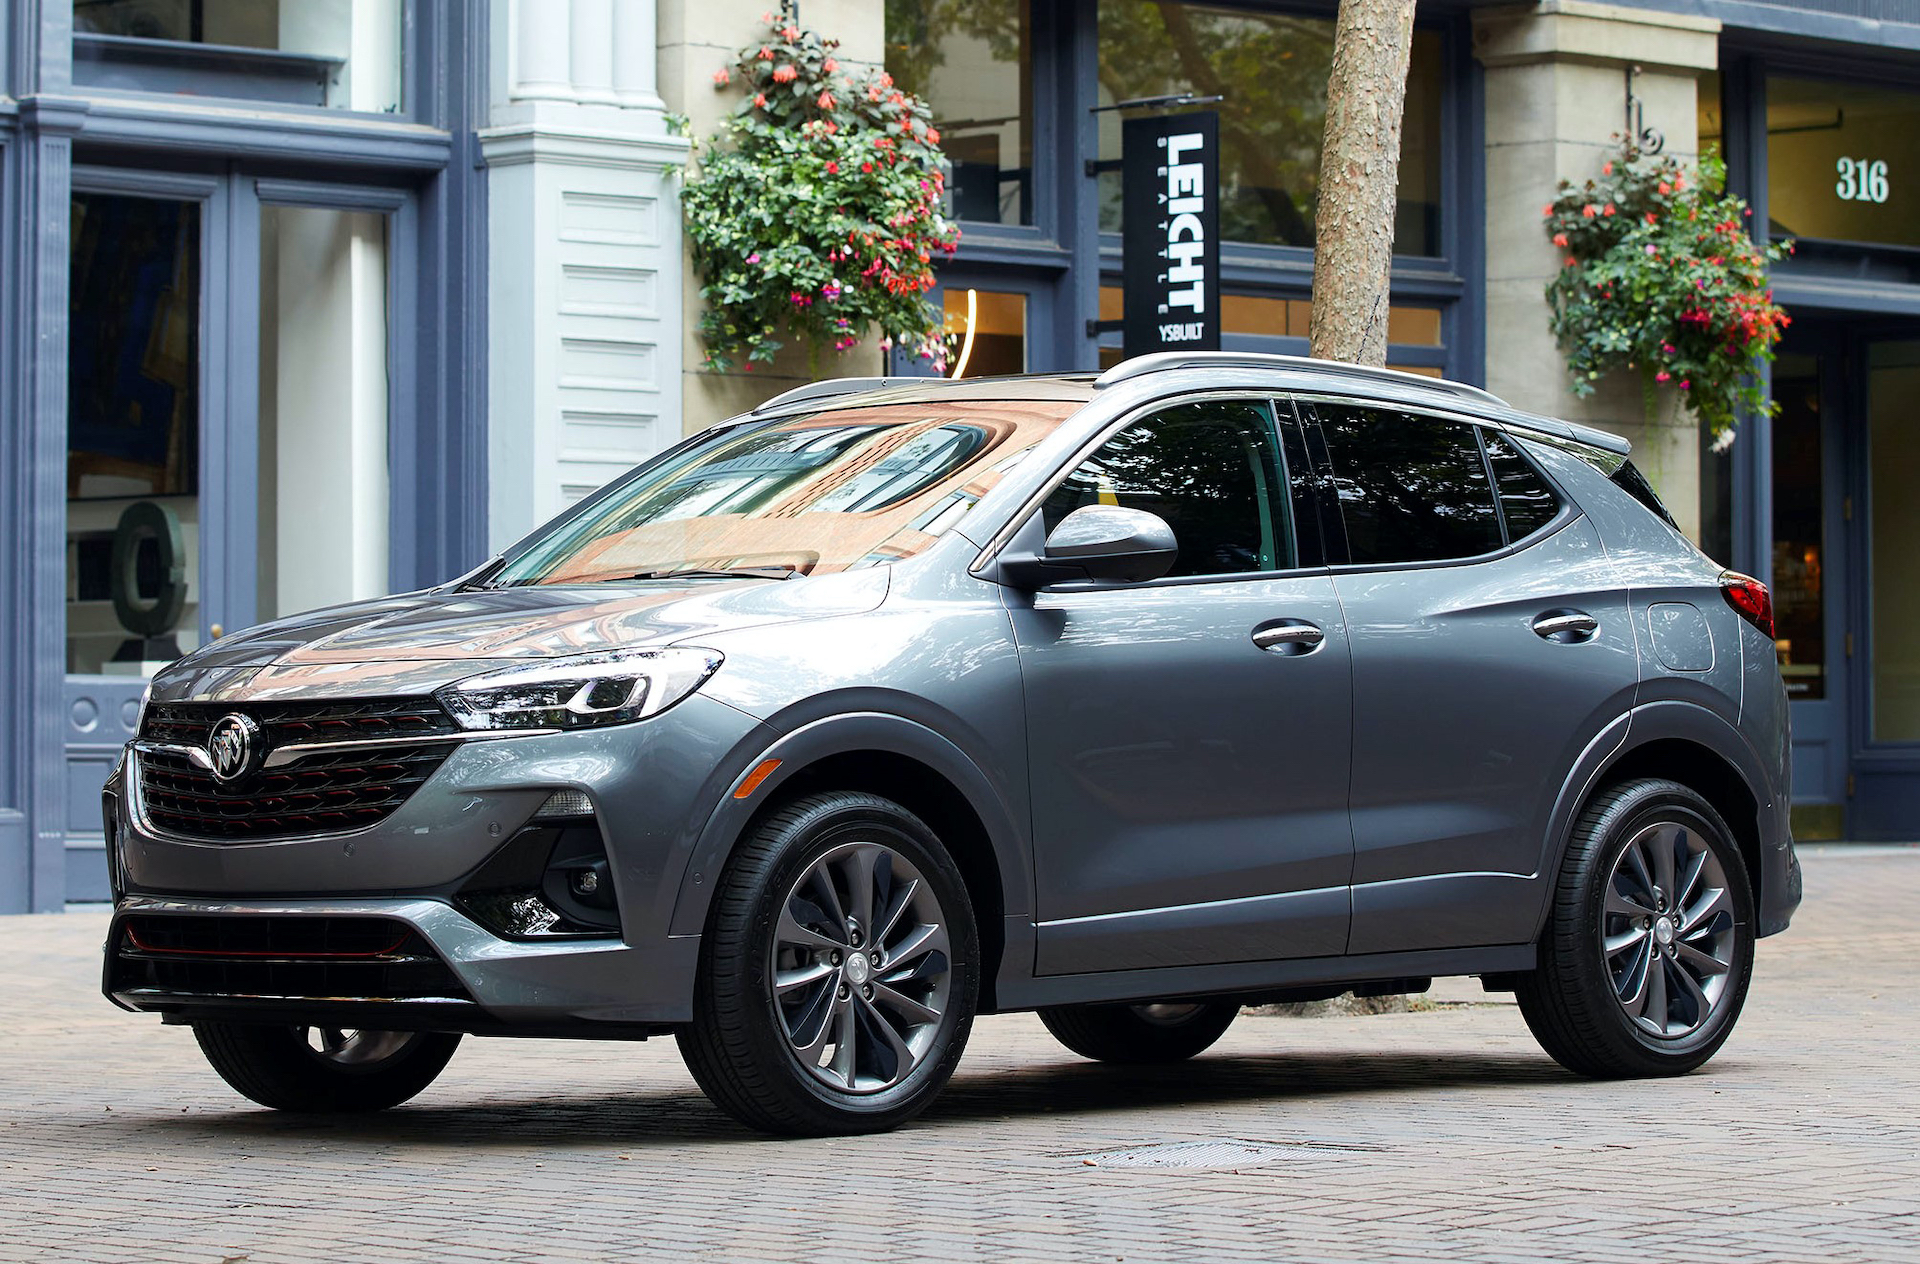 2021 Buick Encore Review, Ratings, Specs, Prices, And Photos Difference Between 2021 Buick Encore And Encore Gx